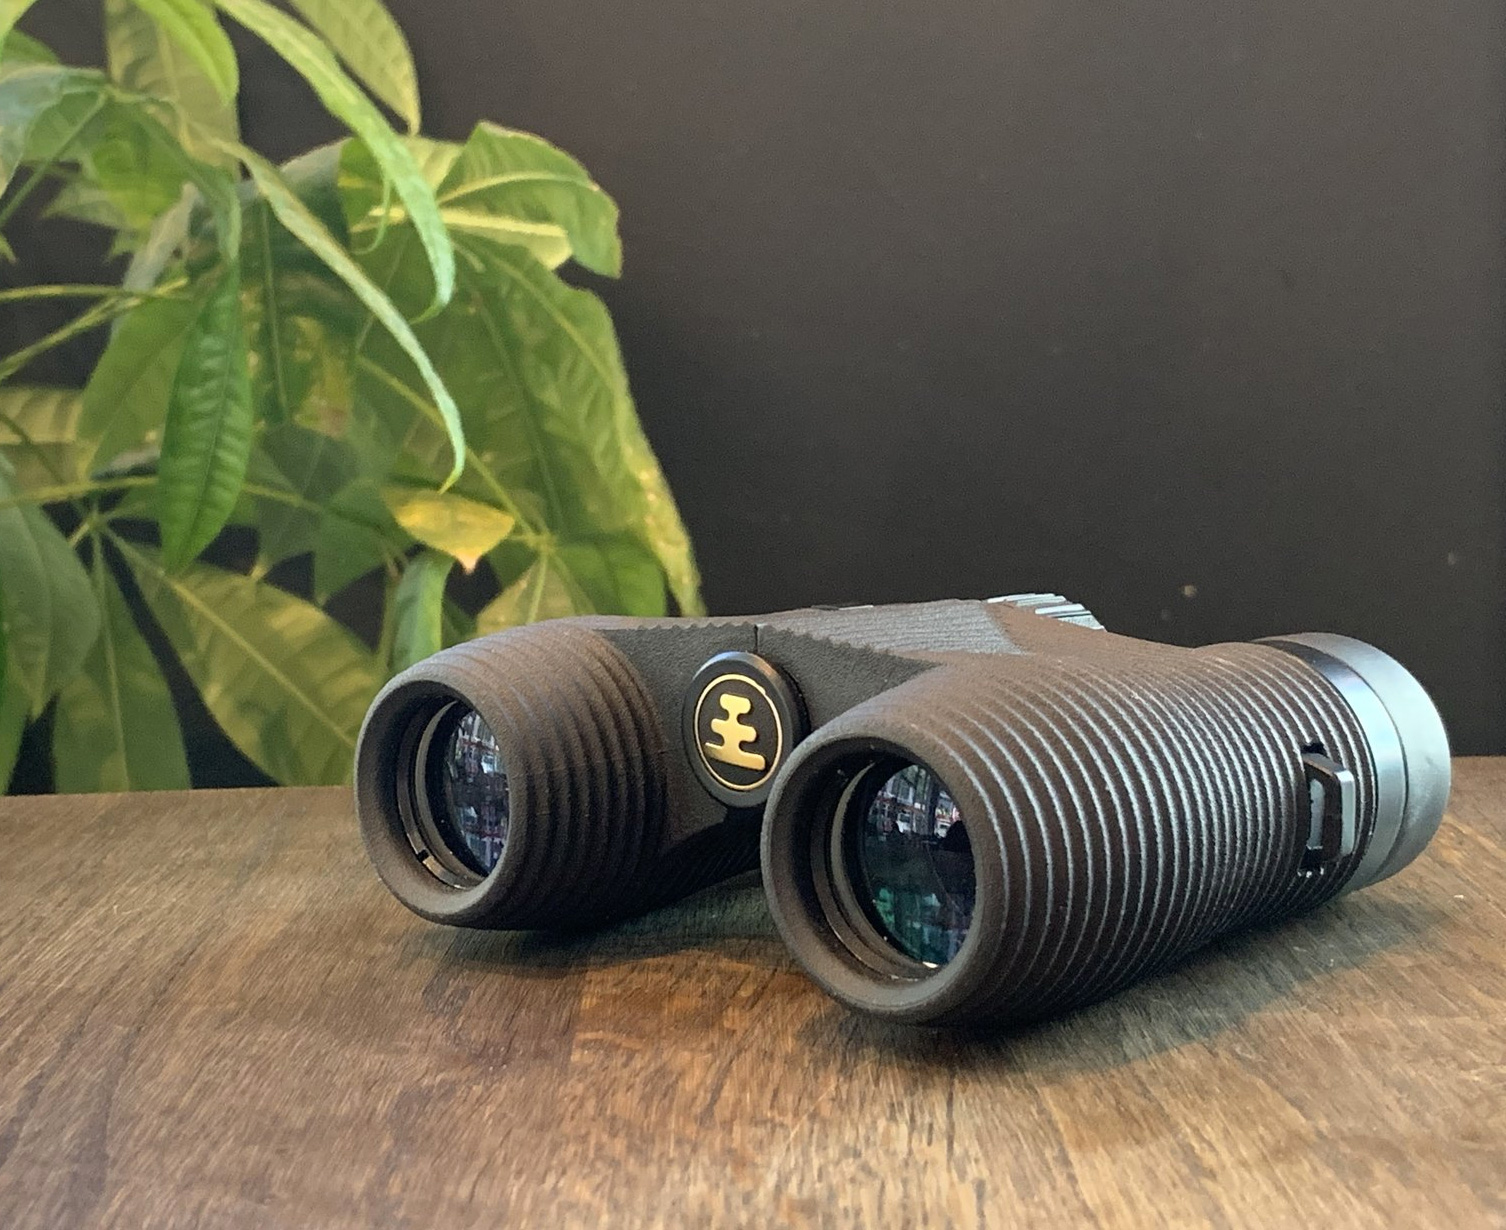 Nocs: Pocketable Binoculars that are Simply Amazing at werd.com